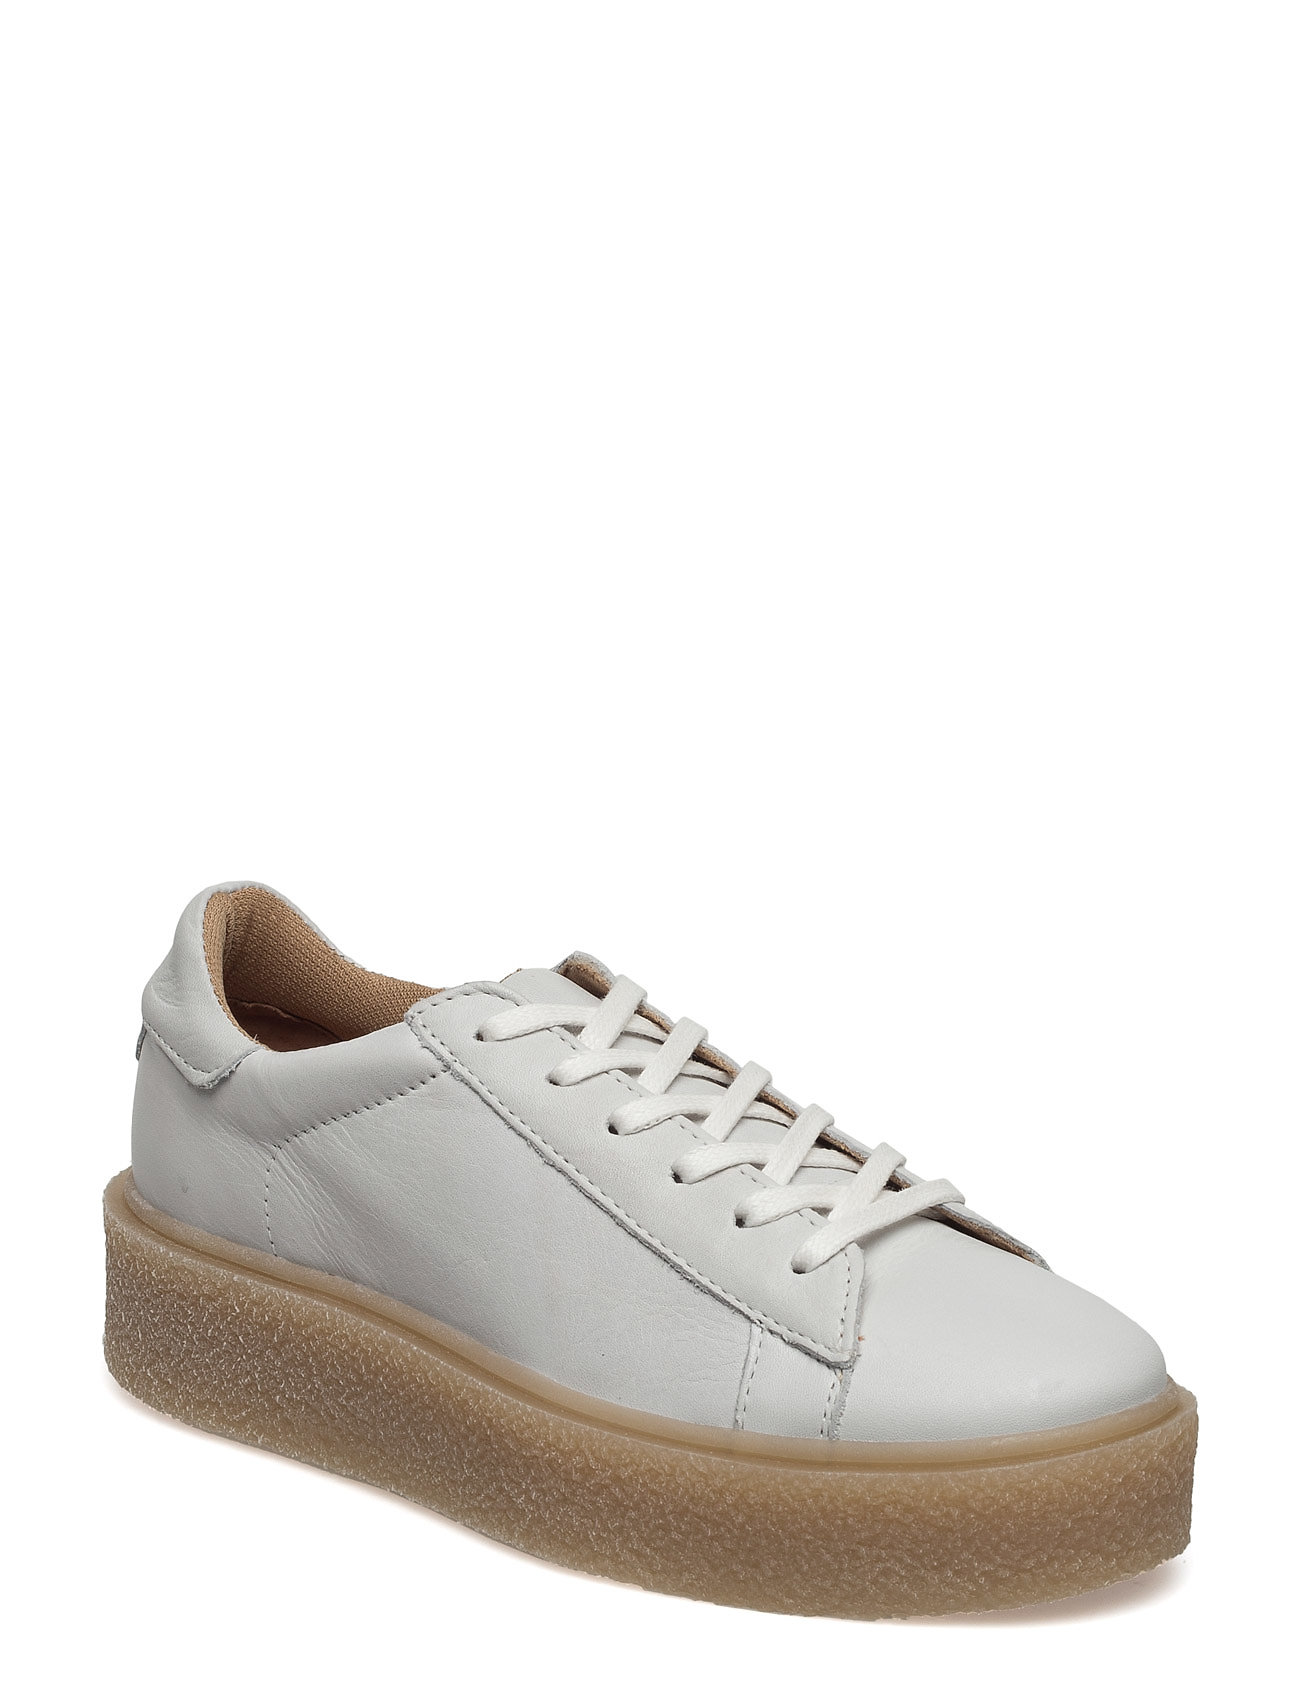 Maintenant 15% De Réduction: Bianco Chaussures En Daim Flatform KDZxn7Pi